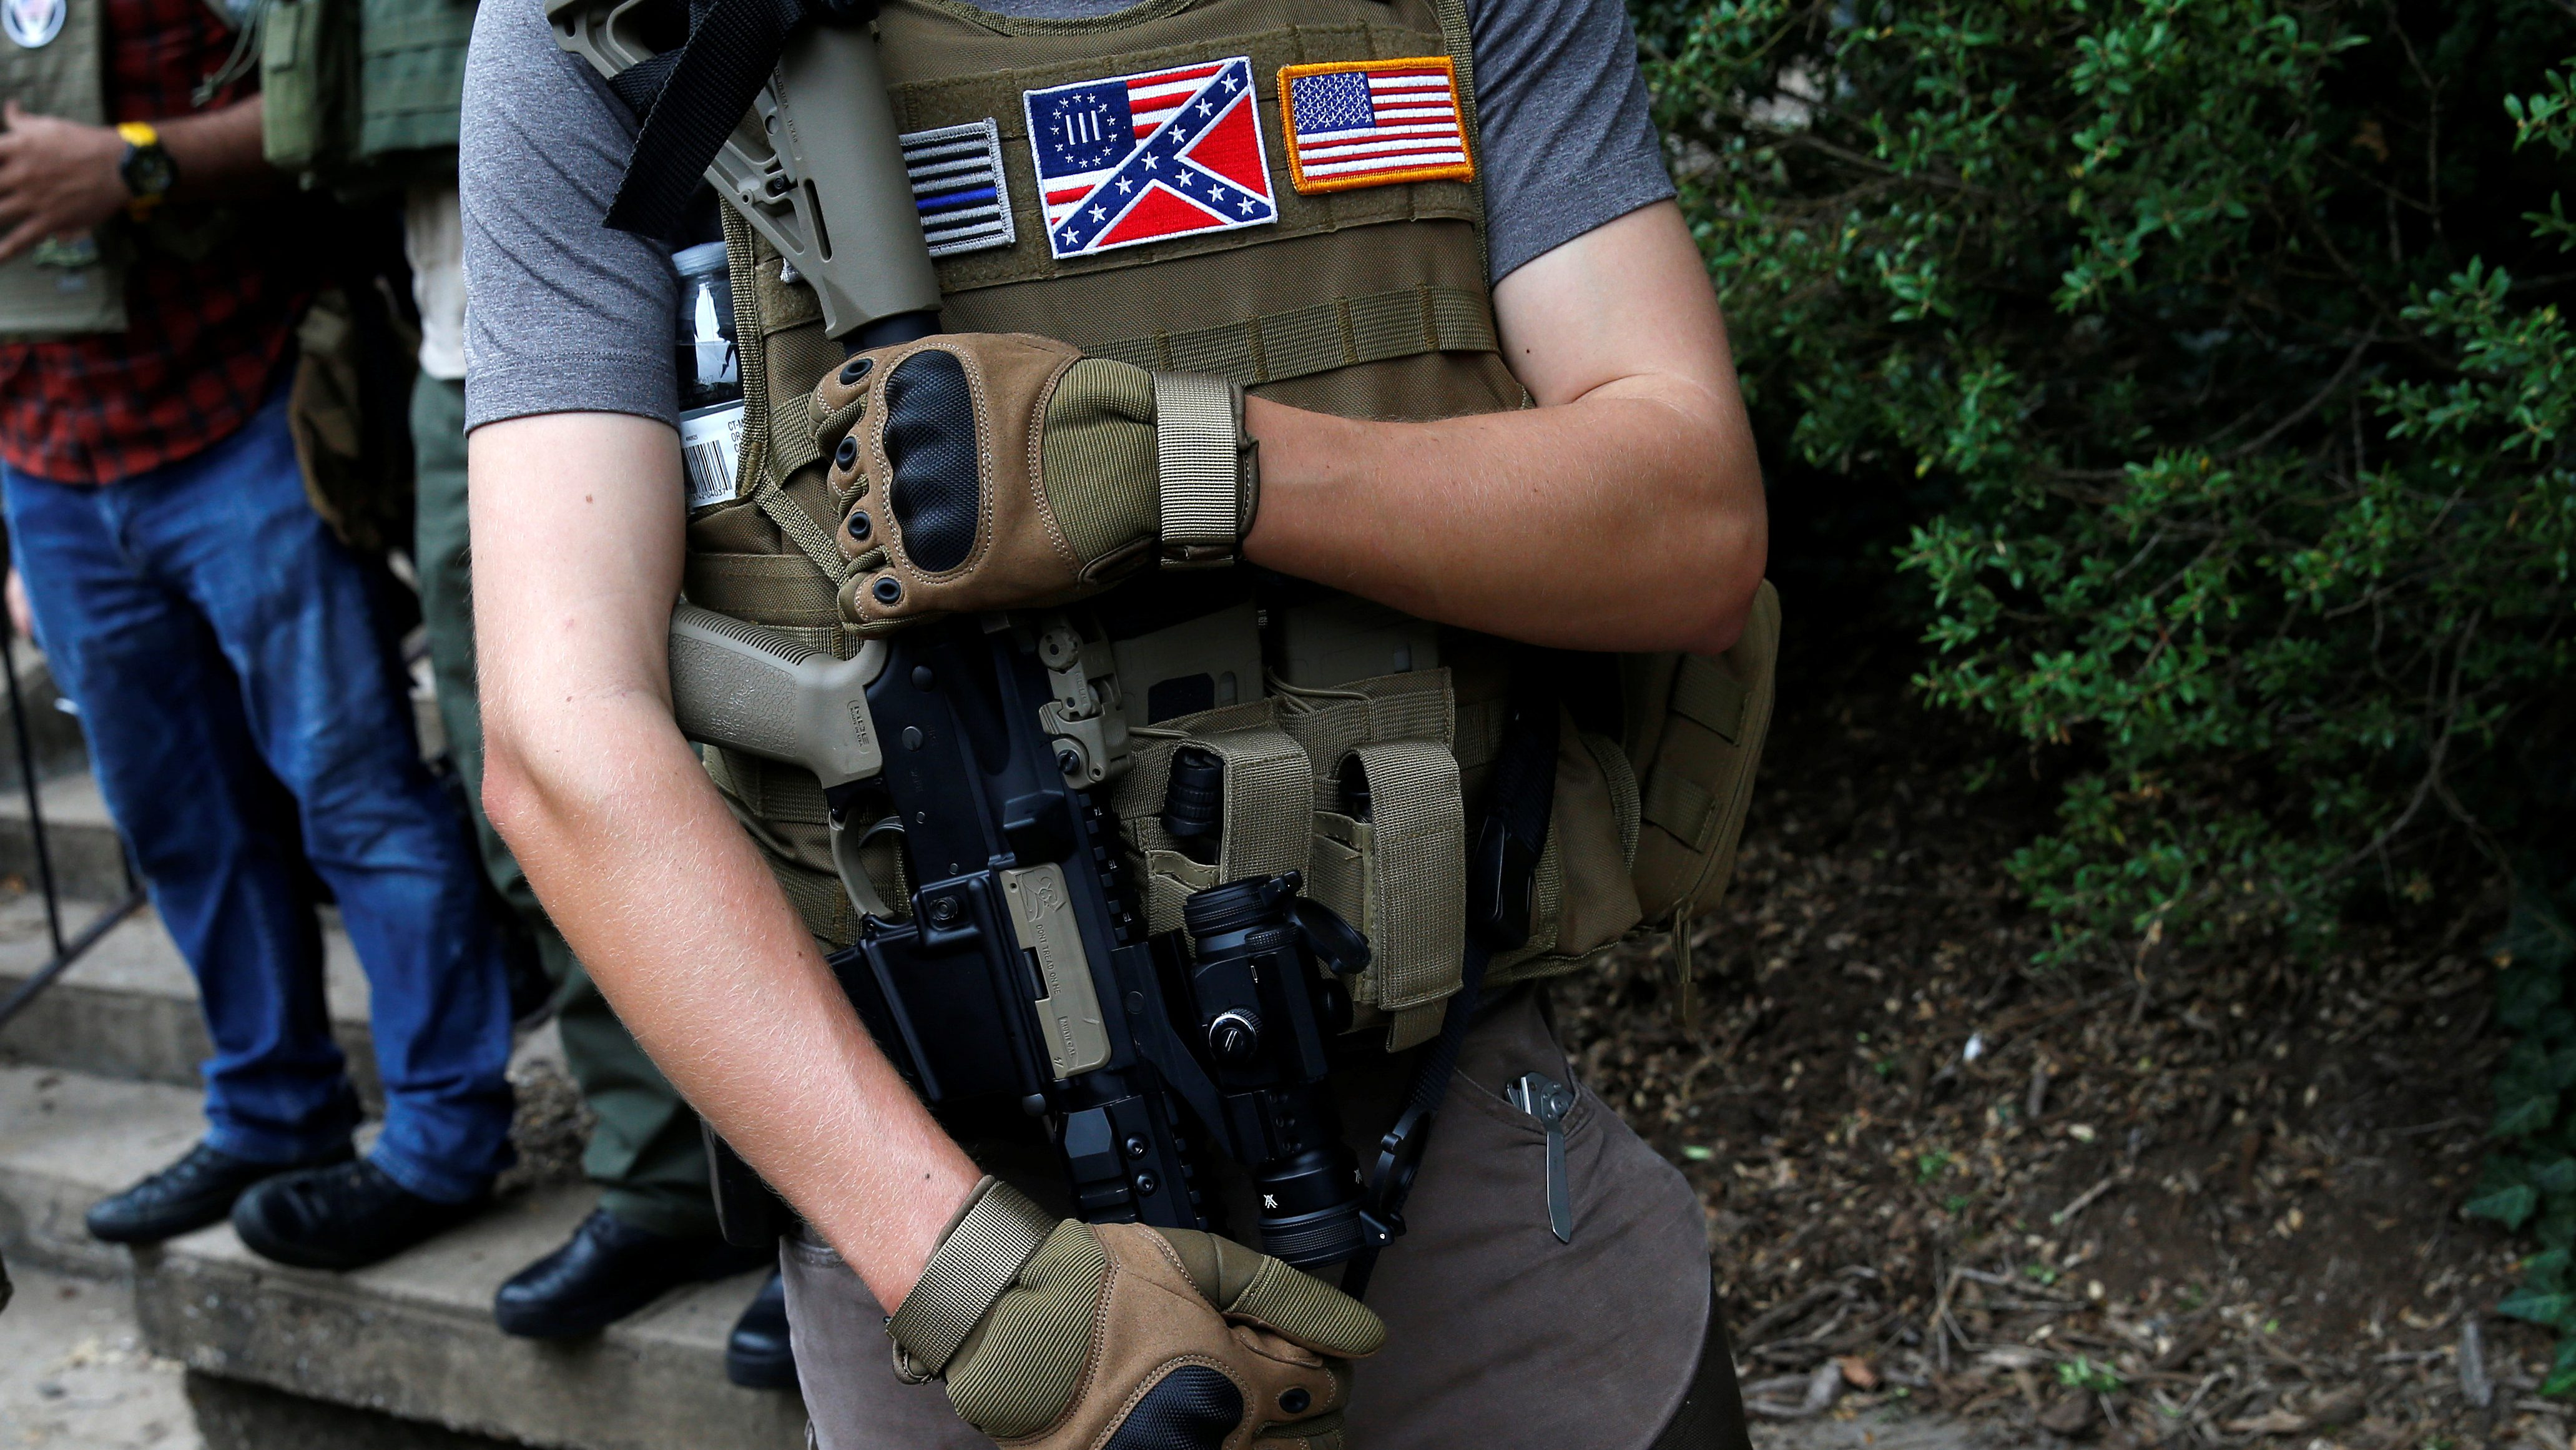 A member of a white supremacists militia stands near a rally in Charlottesville, Virginia, U.S., August 12, 2017. REUTERS/Joshua Roberts - RTS1BI6P